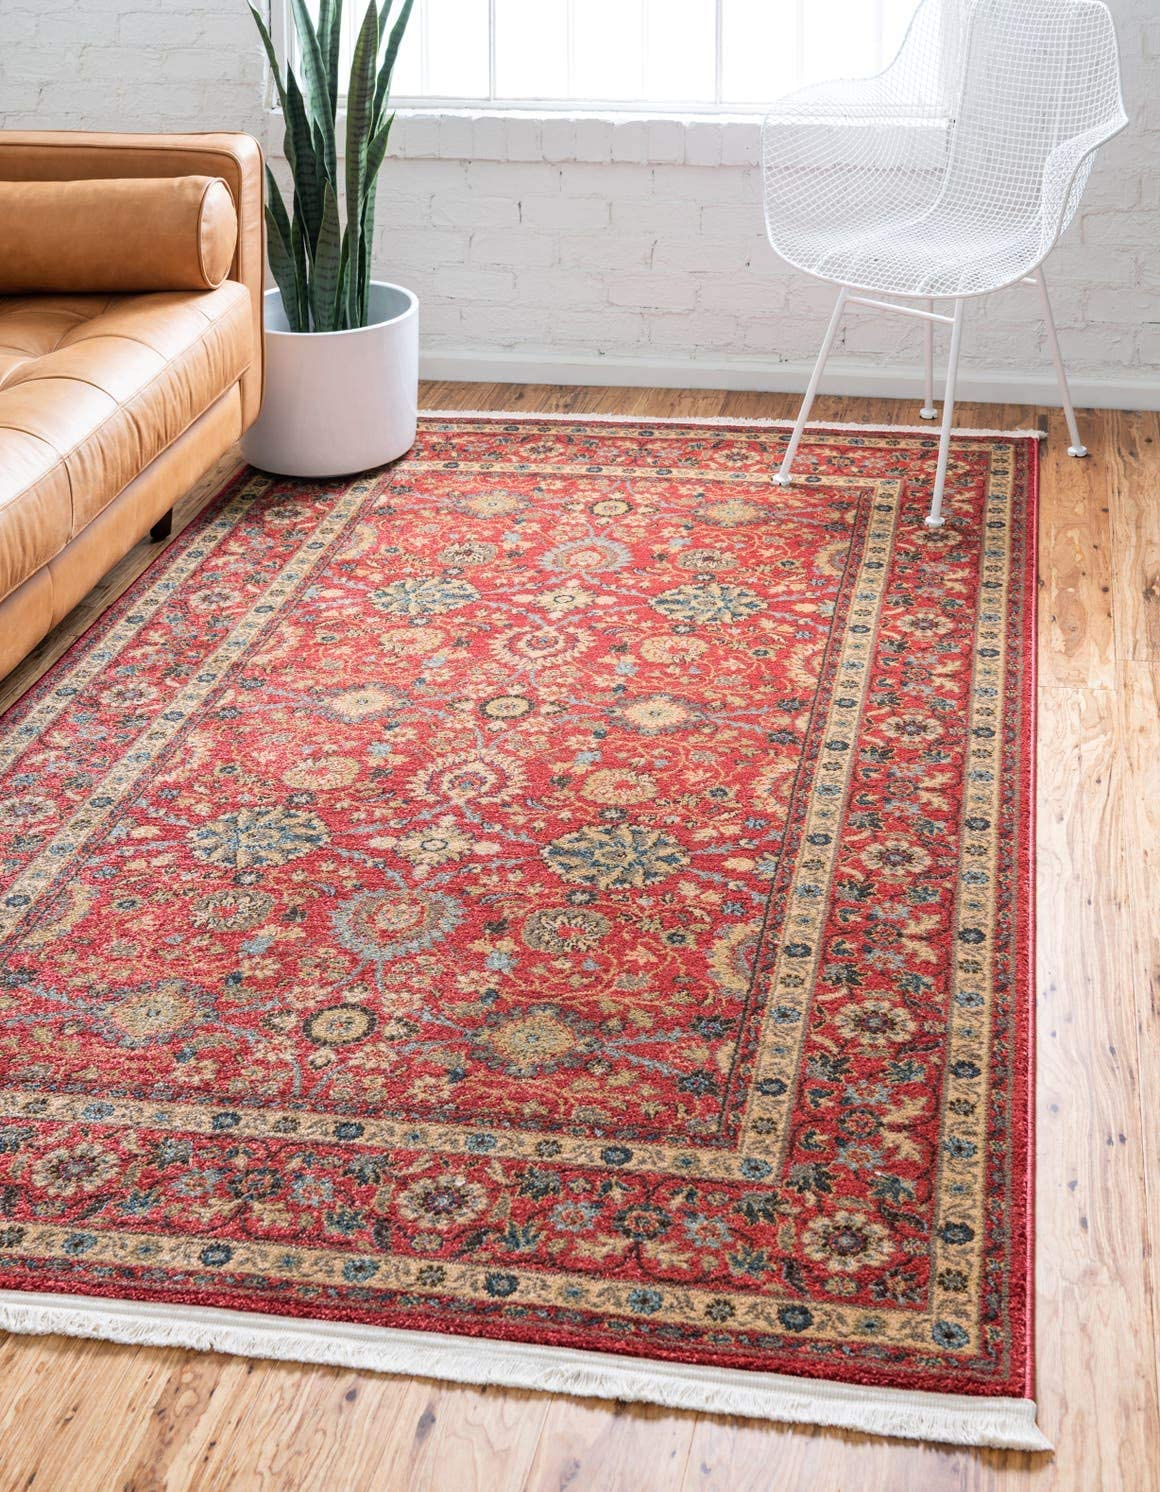 Unique Loom Edinburgh Collection Oriental Traditional French Country Red Area Rug 9 0 x 12 0